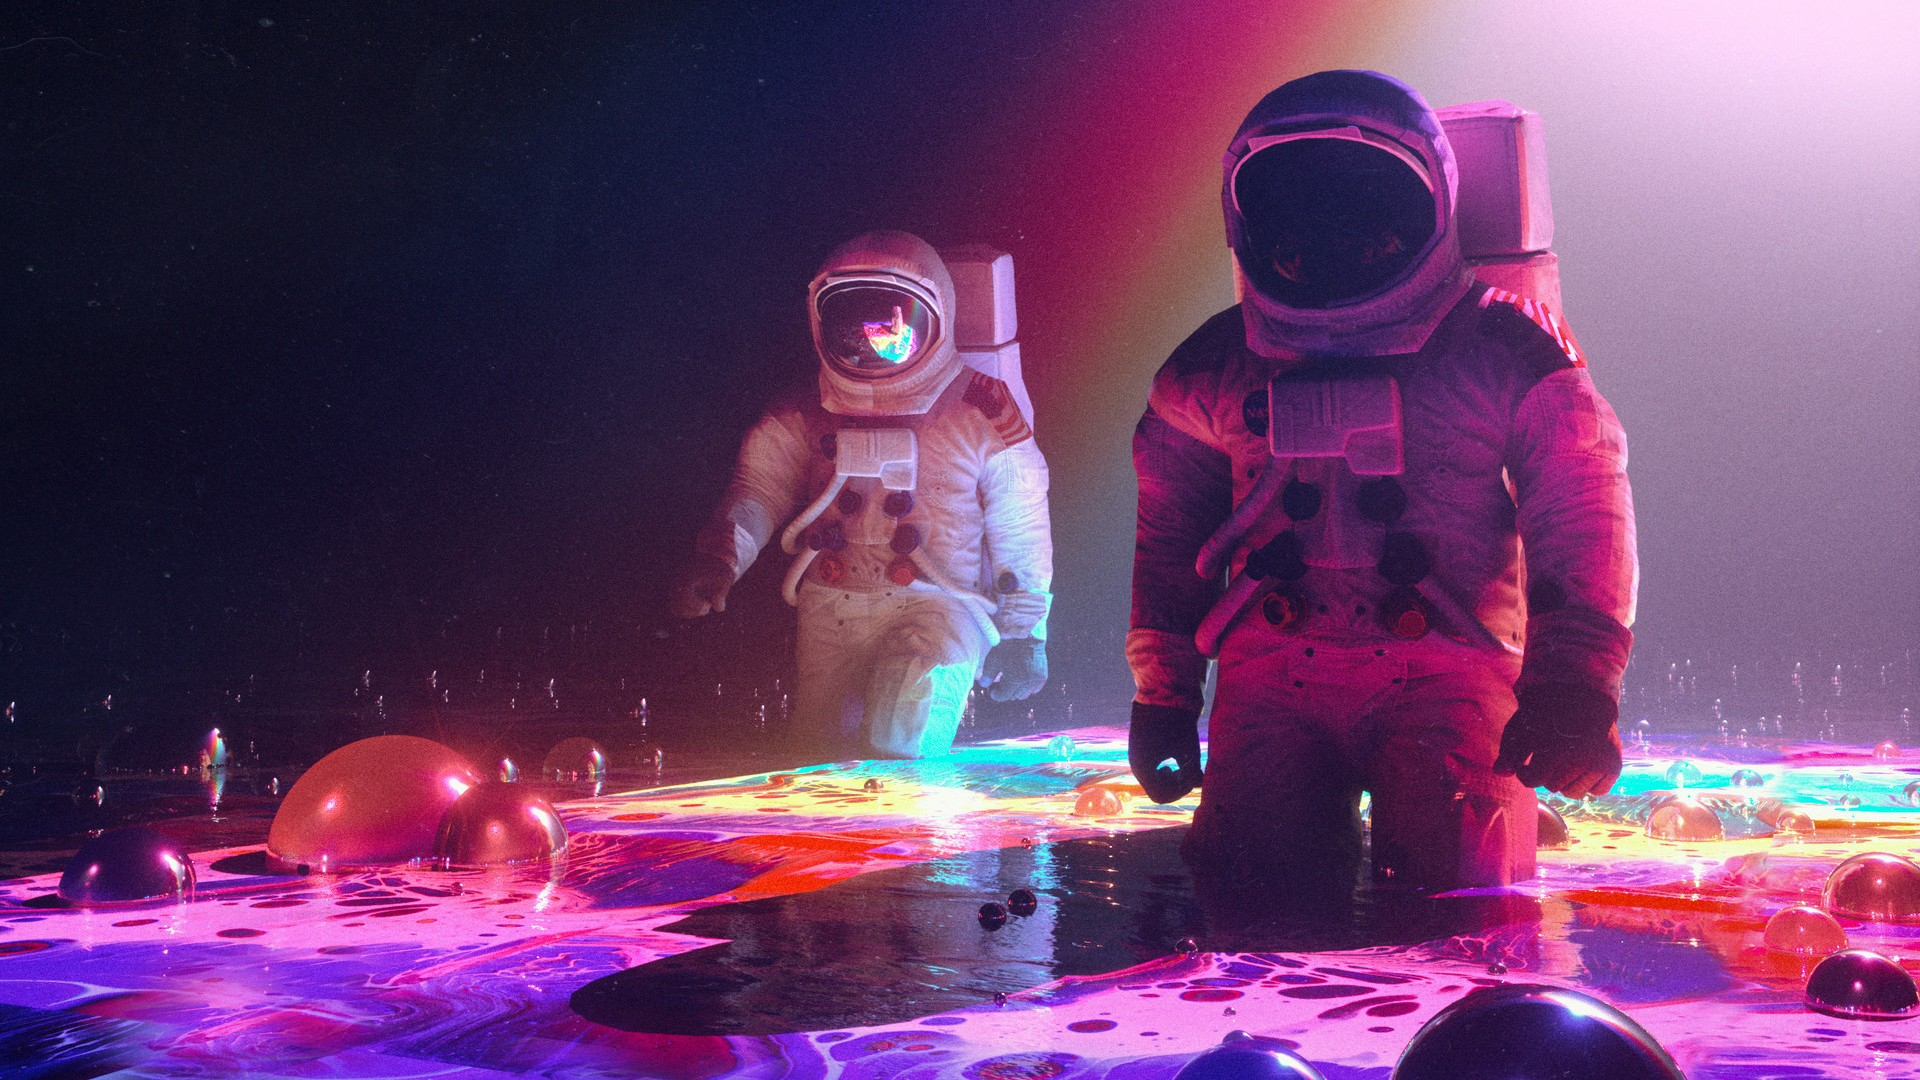 Windows 7 Original Wallpaper Hd Neon Astronauts Wallpapers Hd Wallpapers Id 24865